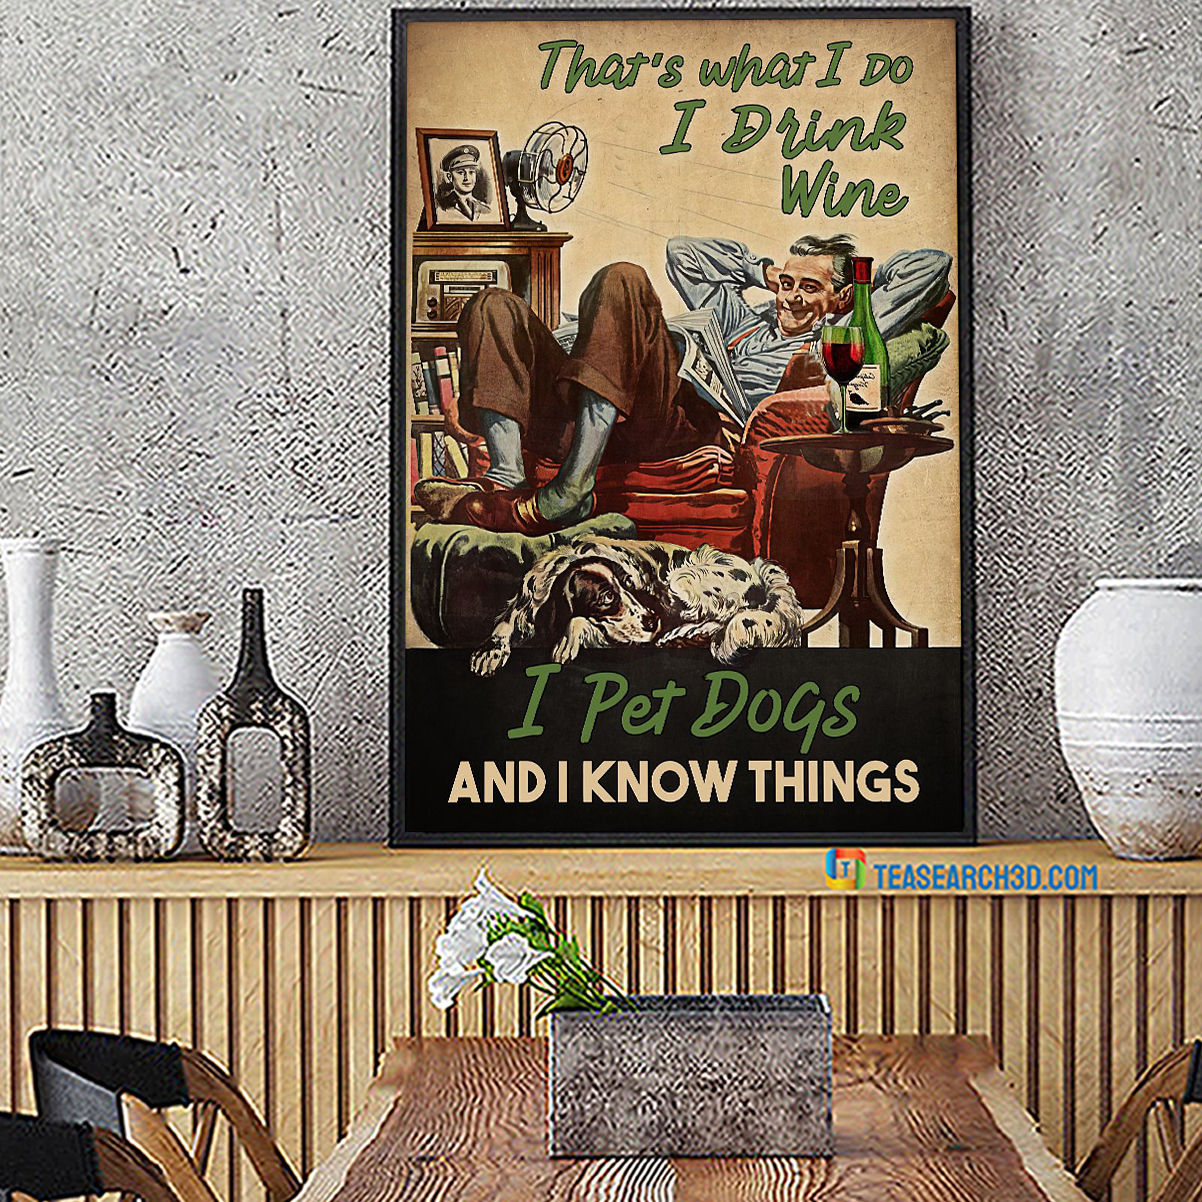 That's what I do I drink wine I pet dogs and I know things poster A1